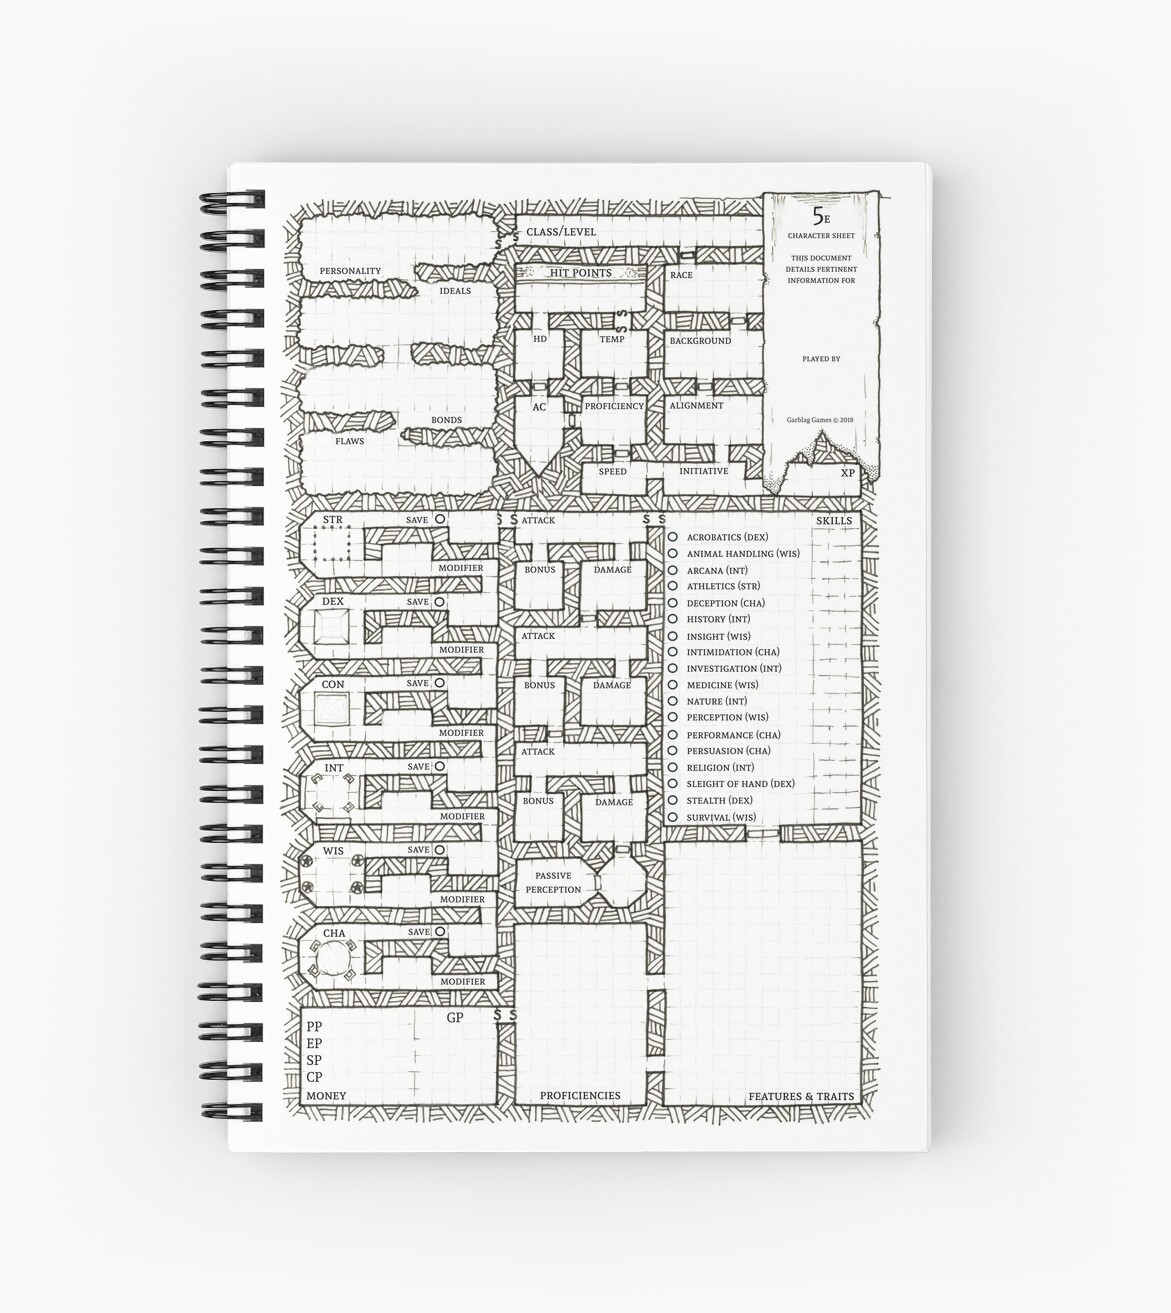 'Dungeon Themed 5e Character Sheet Art' Spiral Notebook by Garblag